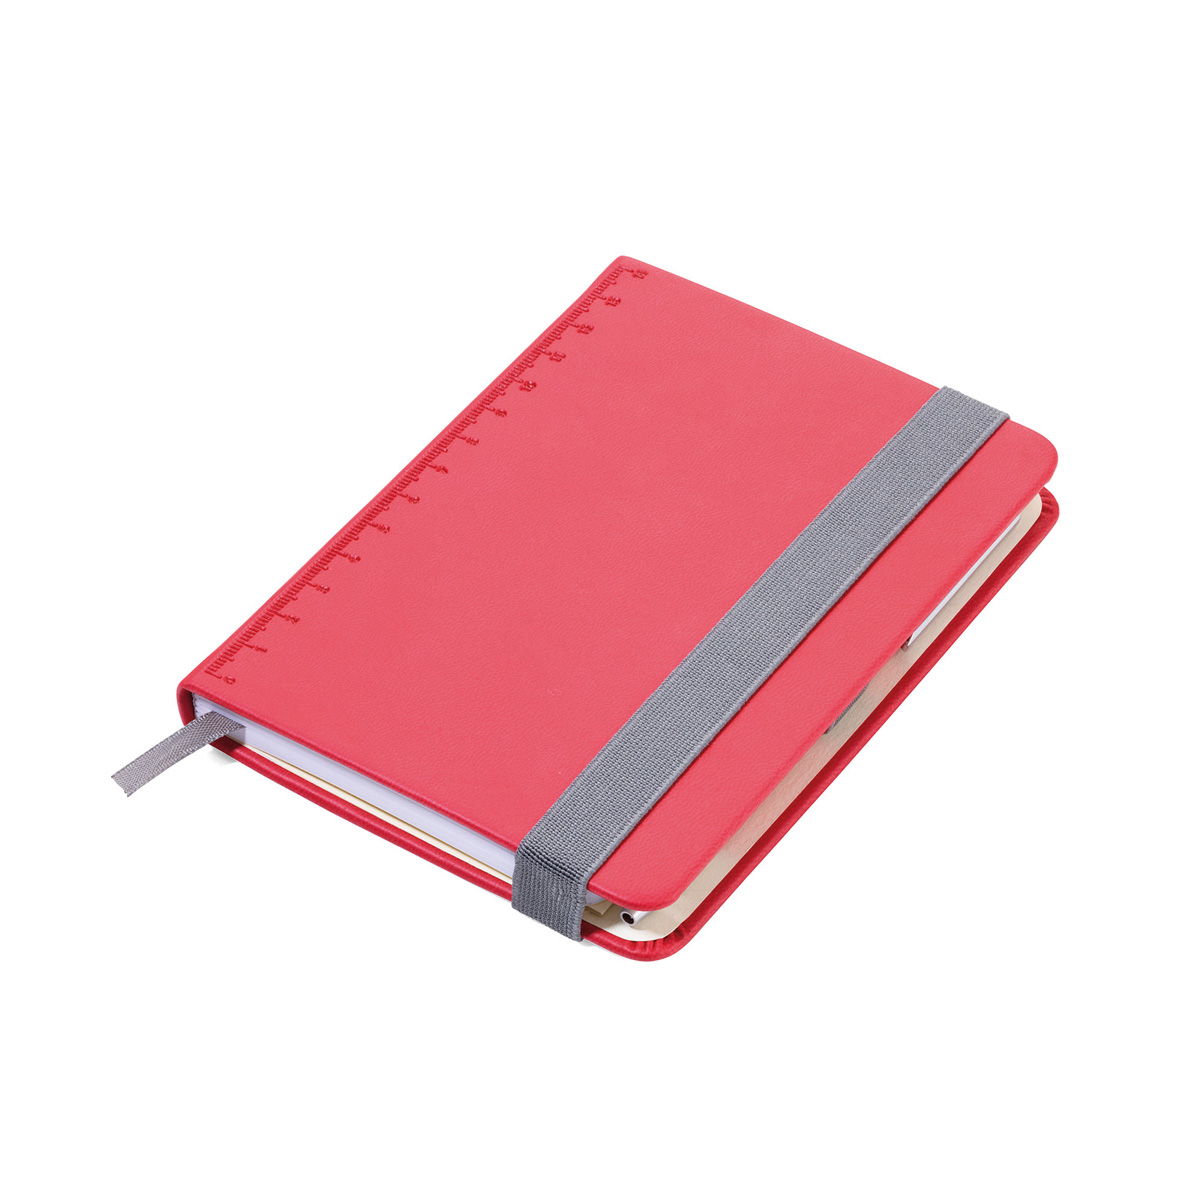 Troika A6 Notebook with Slim Construction Pen Red